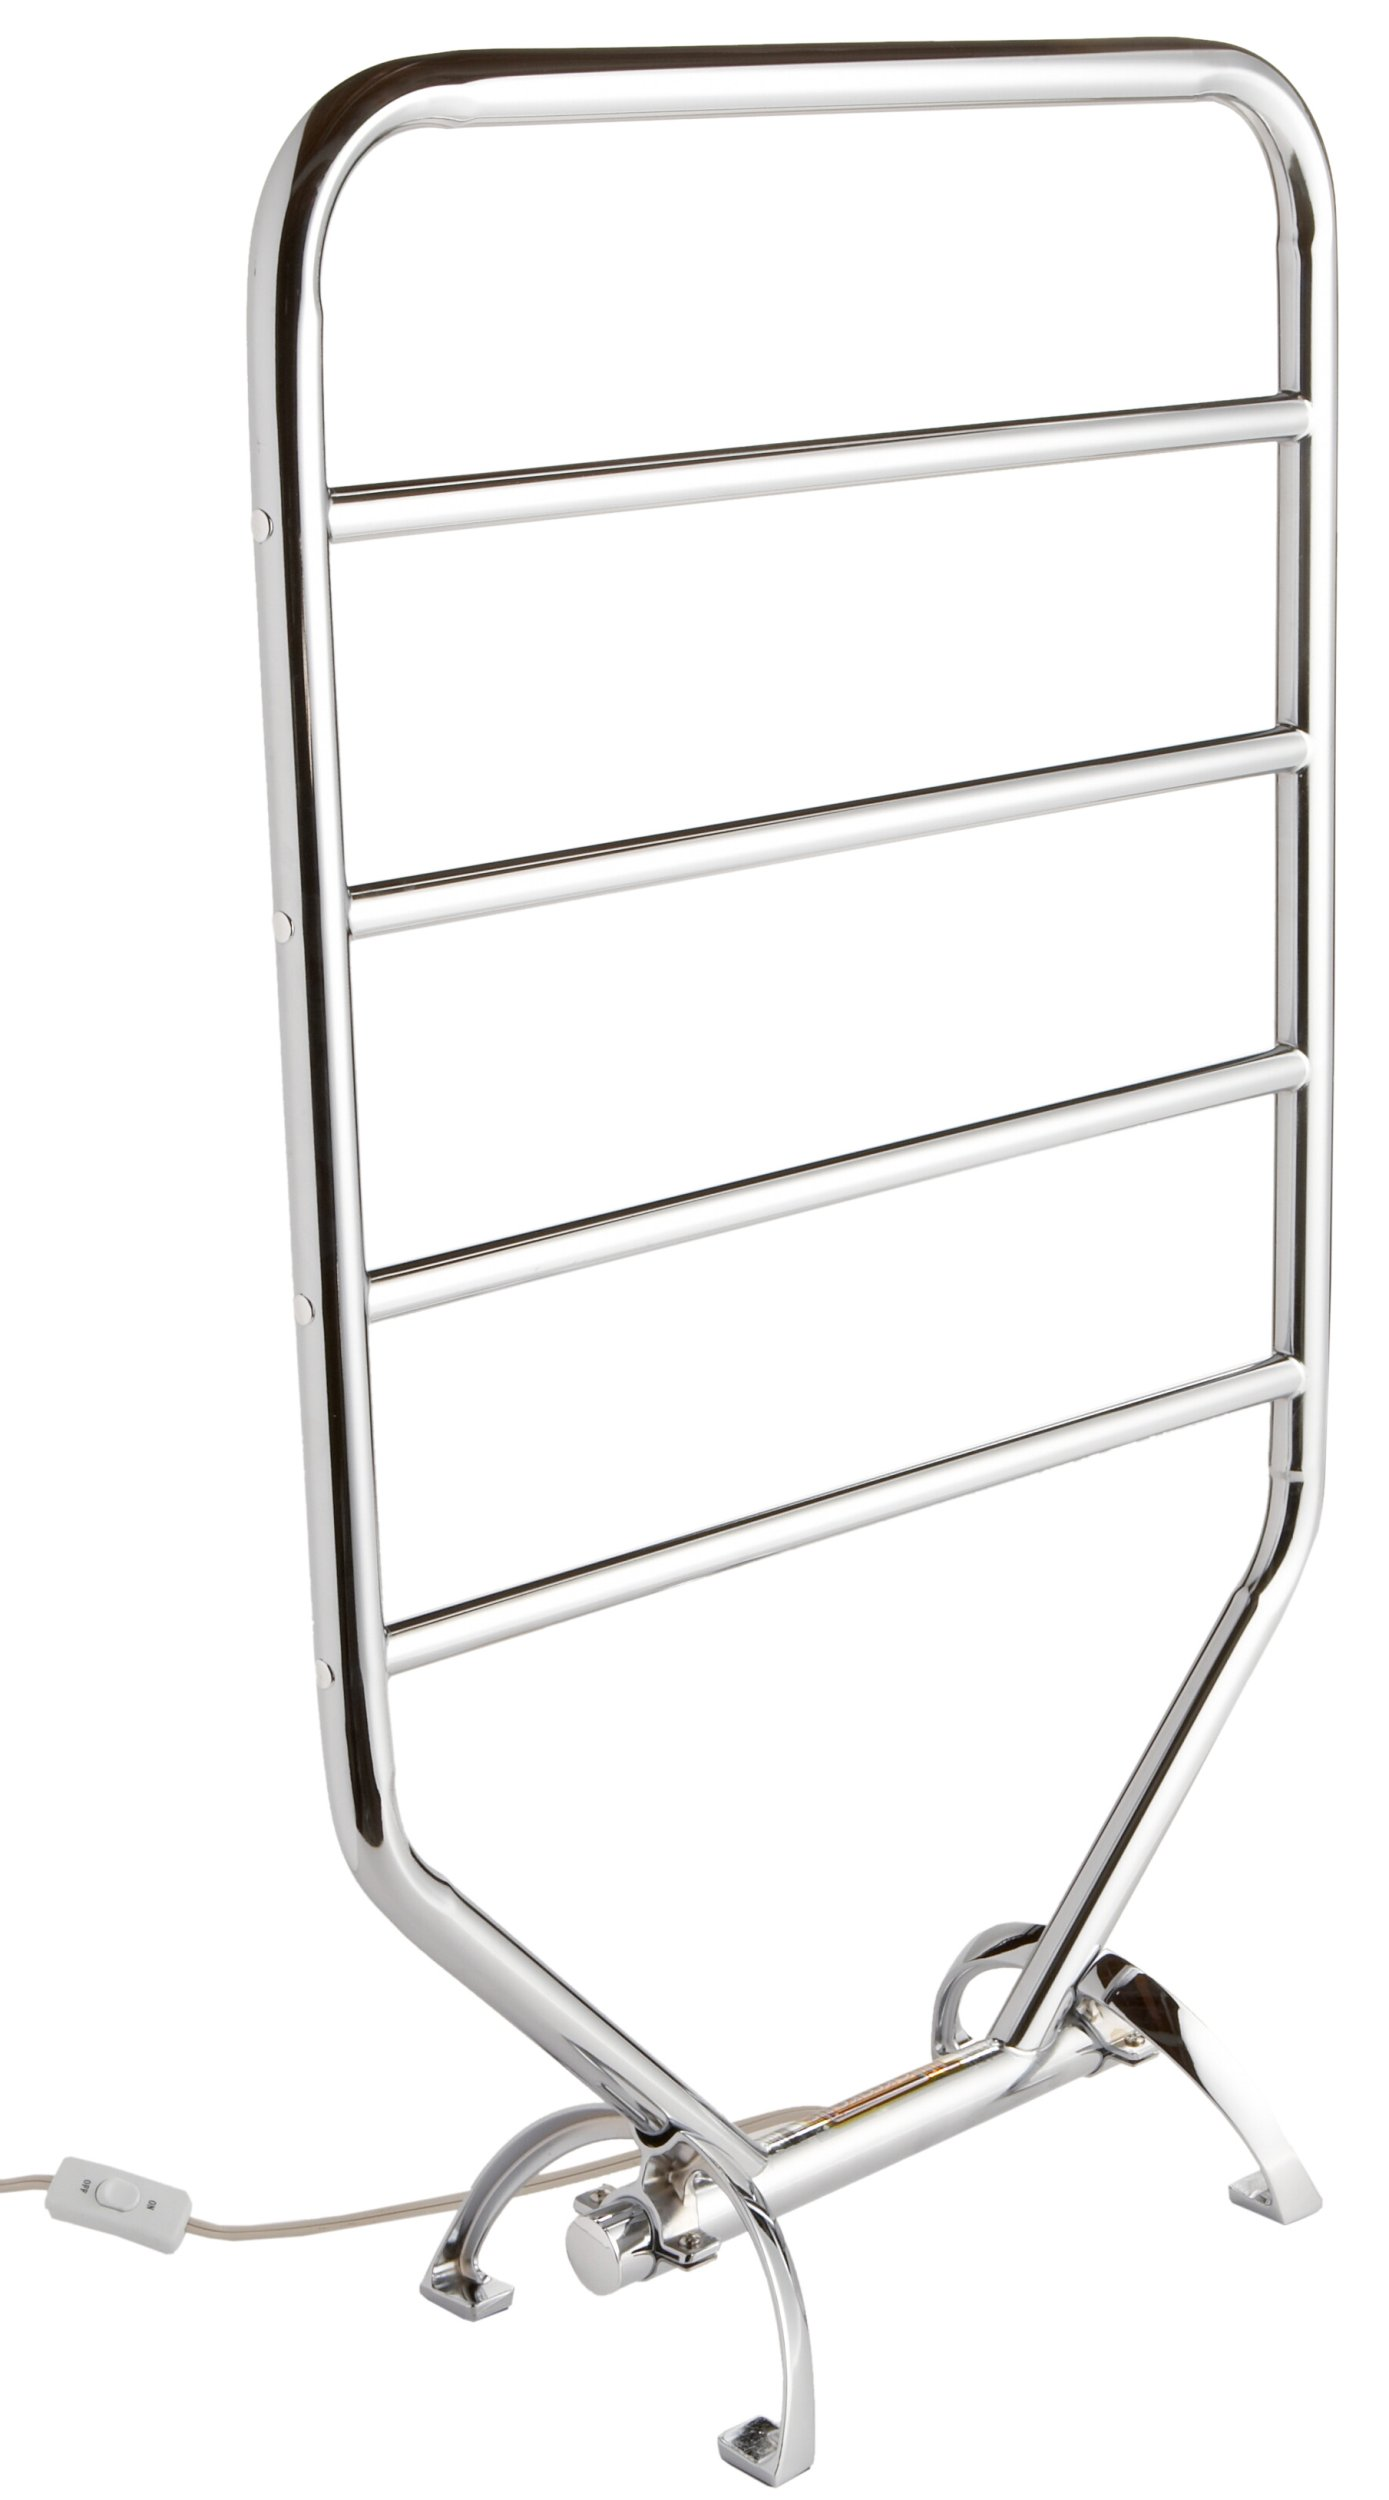 Warmrails RTC Mid Size Wall Mounted or Floor Standing Towel Warmer, 34-Inch, Chrome Finish by Warmrails